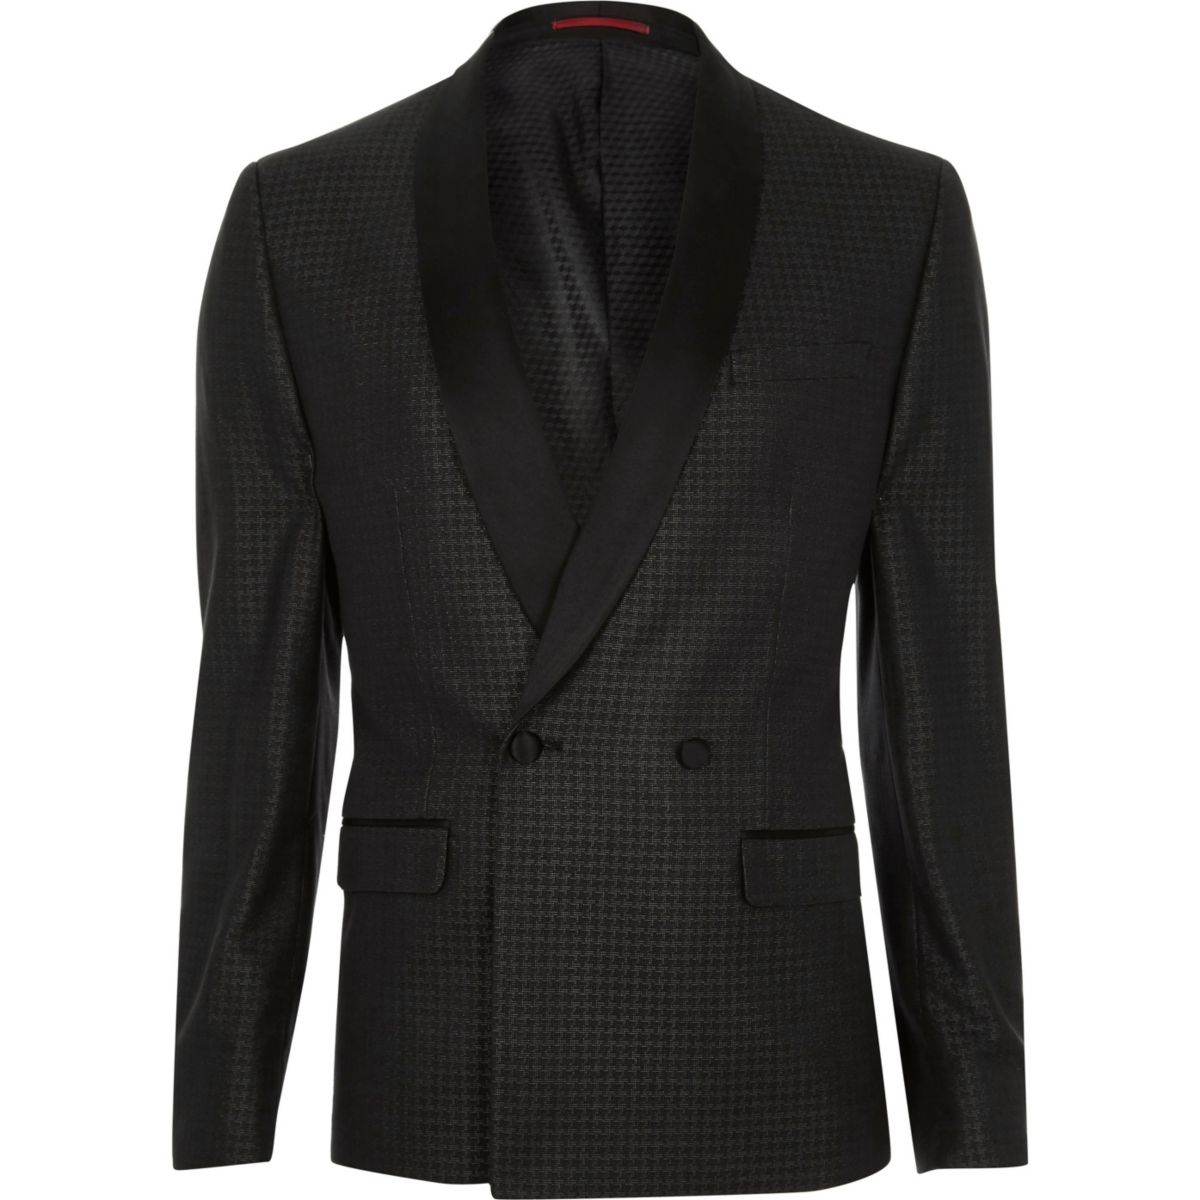 Grey metallic dogtooth skinny suit jacket